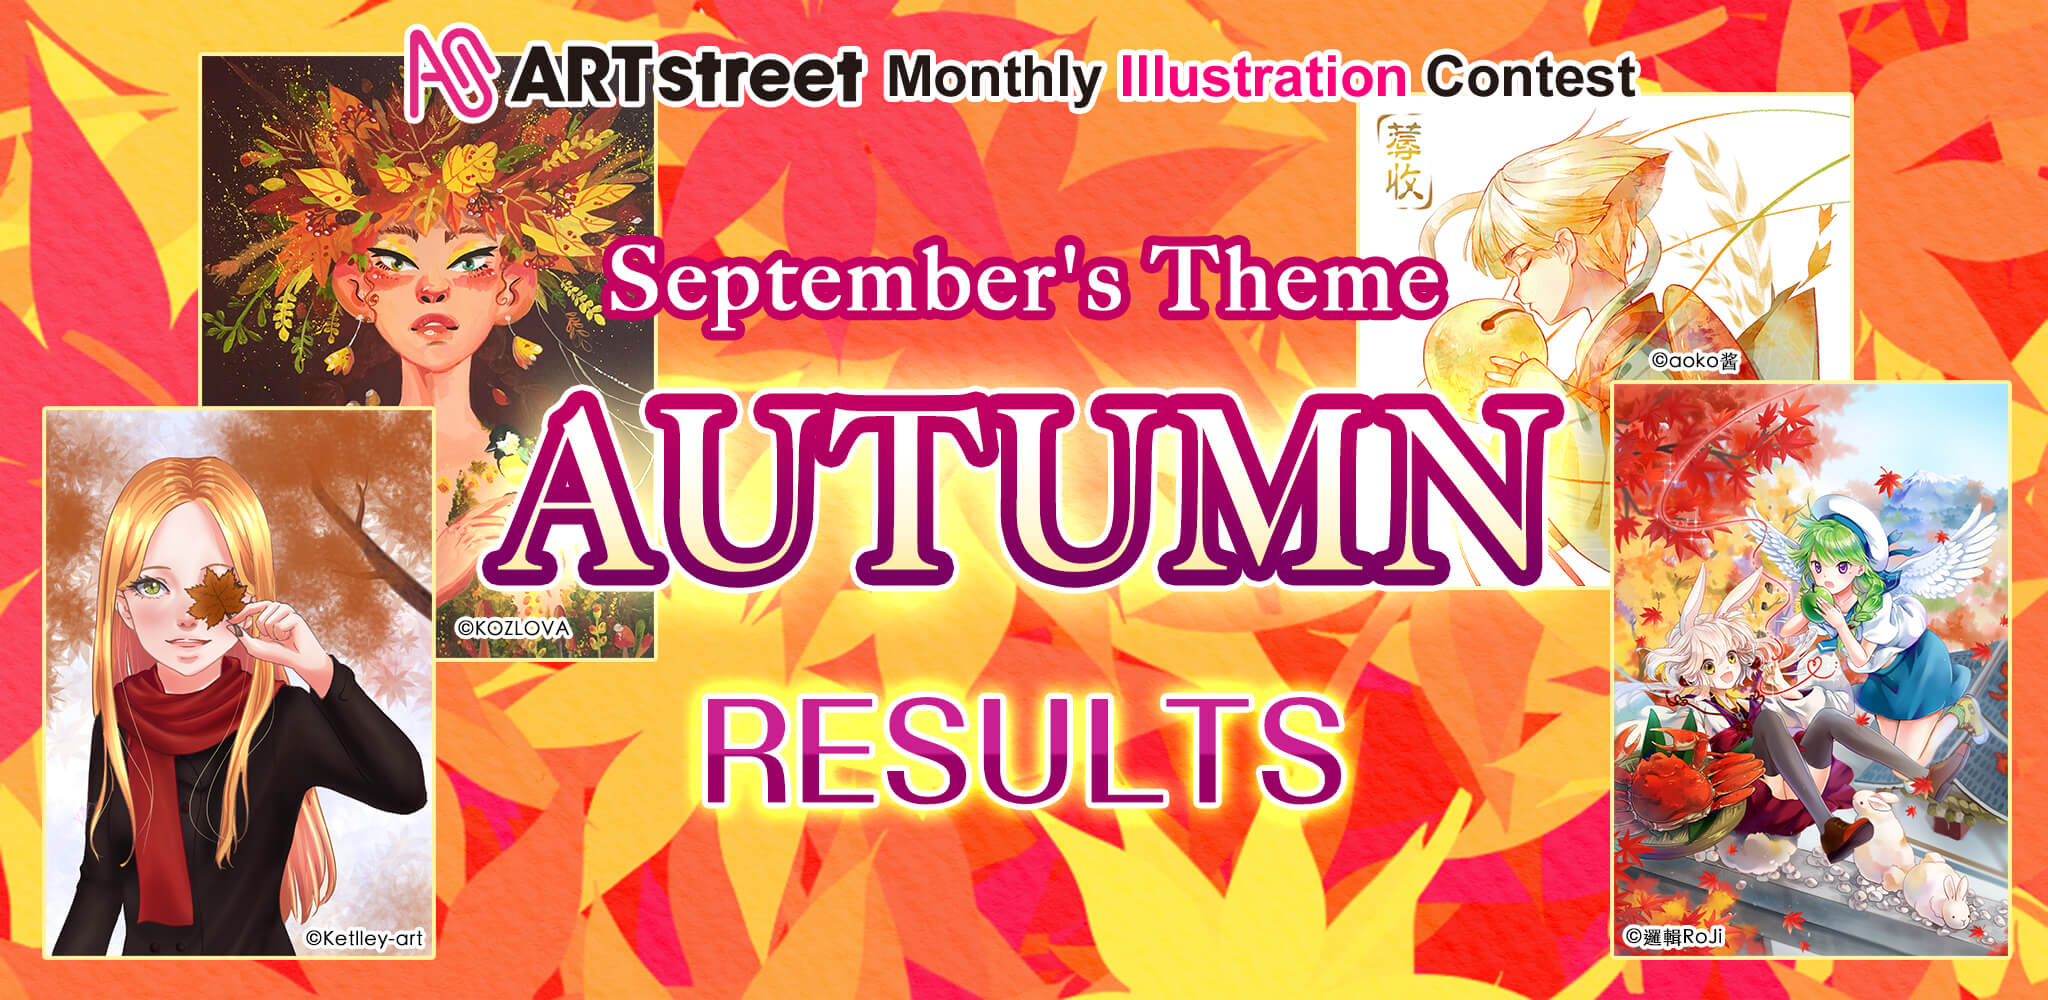 ART street Monthly Illustration Contest Sep. 2019 Results | Contest - Art Street (ART street) by MediBang